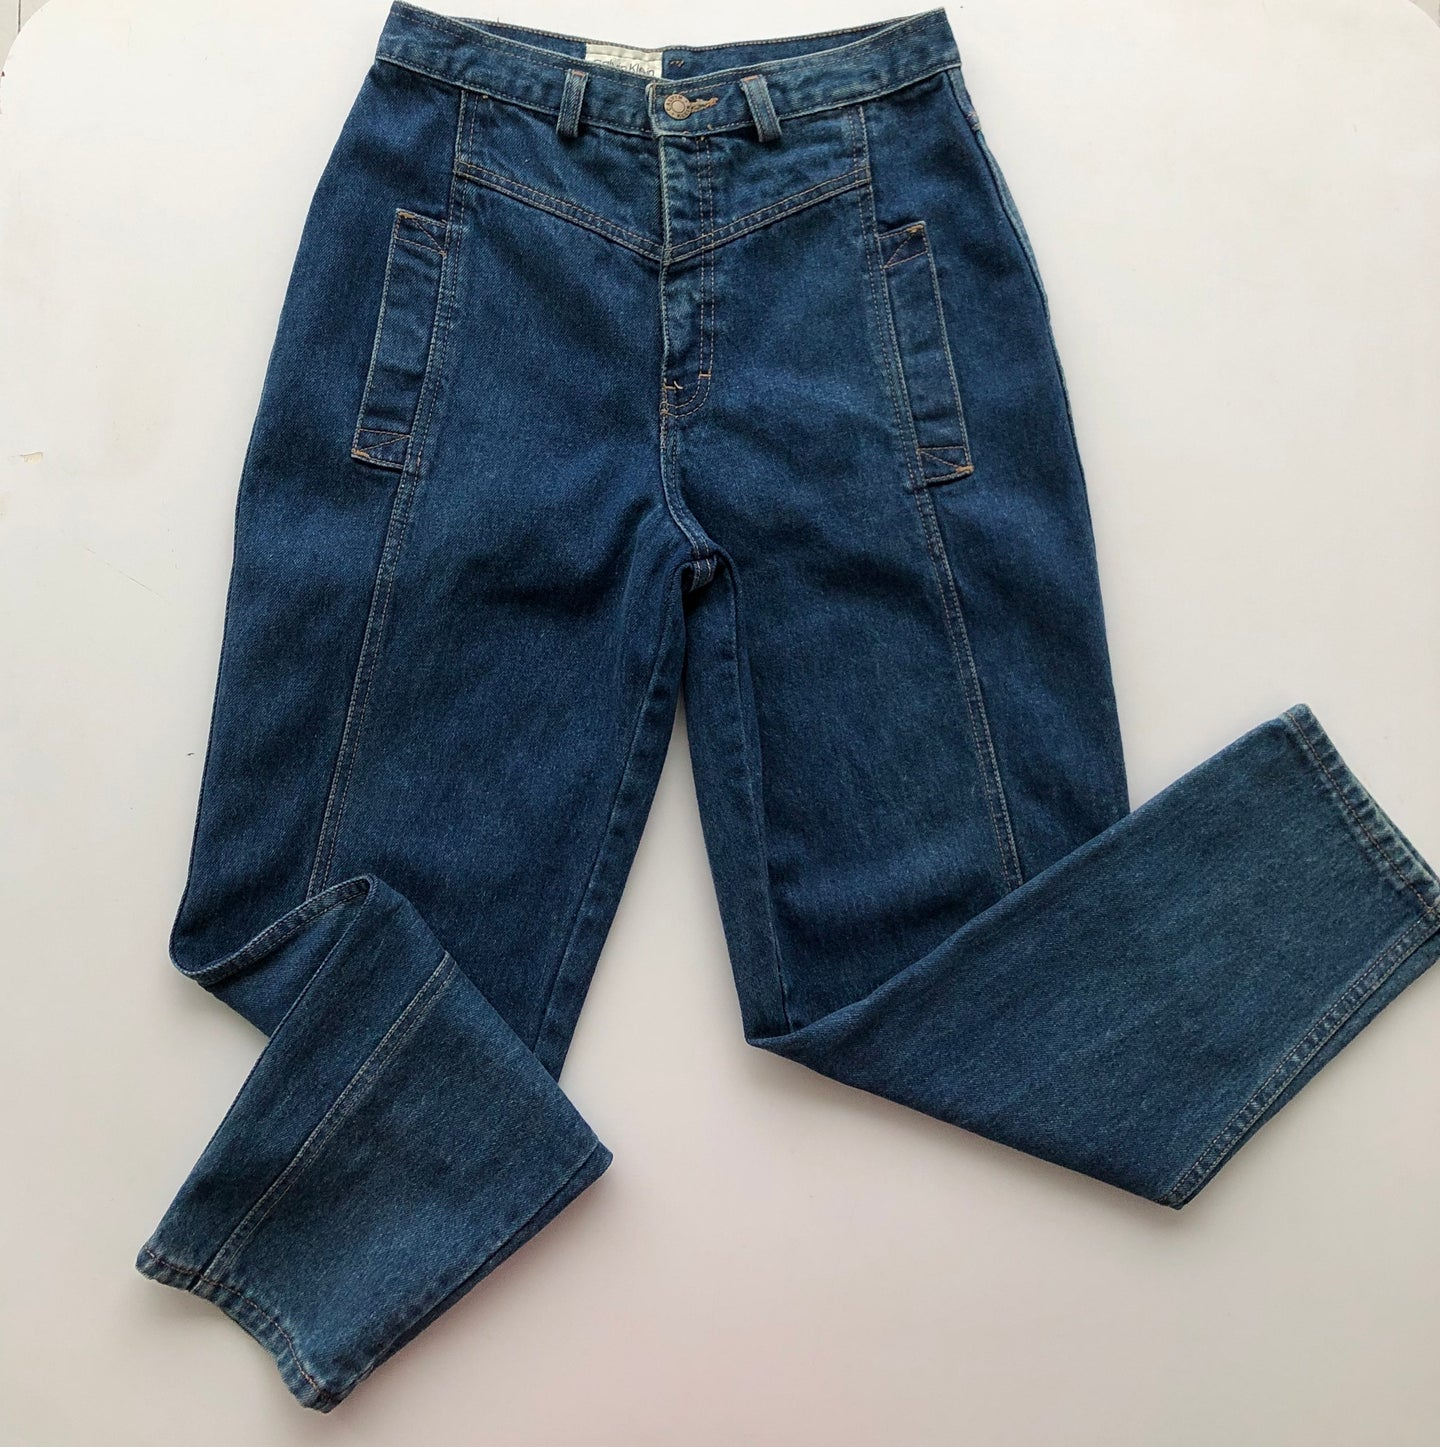 Calvin Klein denim